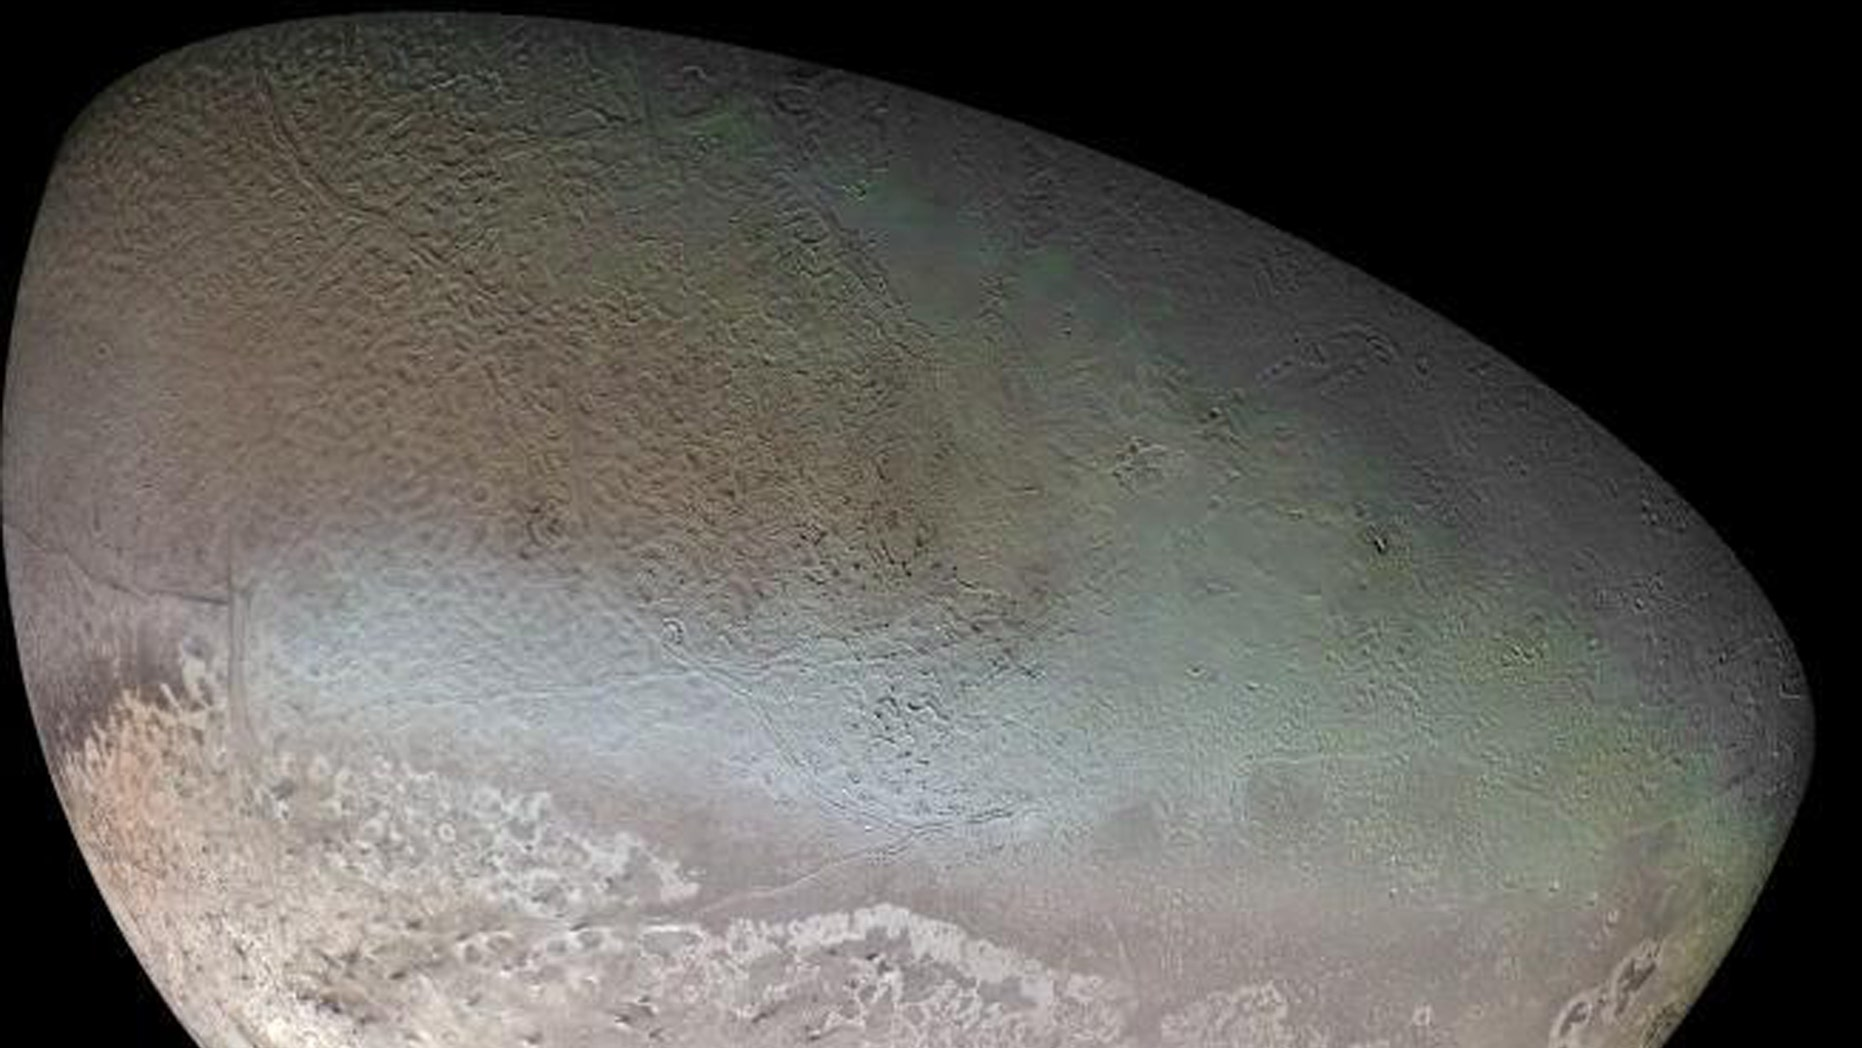 Global color mosaic of Triton, taken in 1989 by Voyager 2 during its flyby of the Neptune system. (Credit: NASA/JPL/USGS)